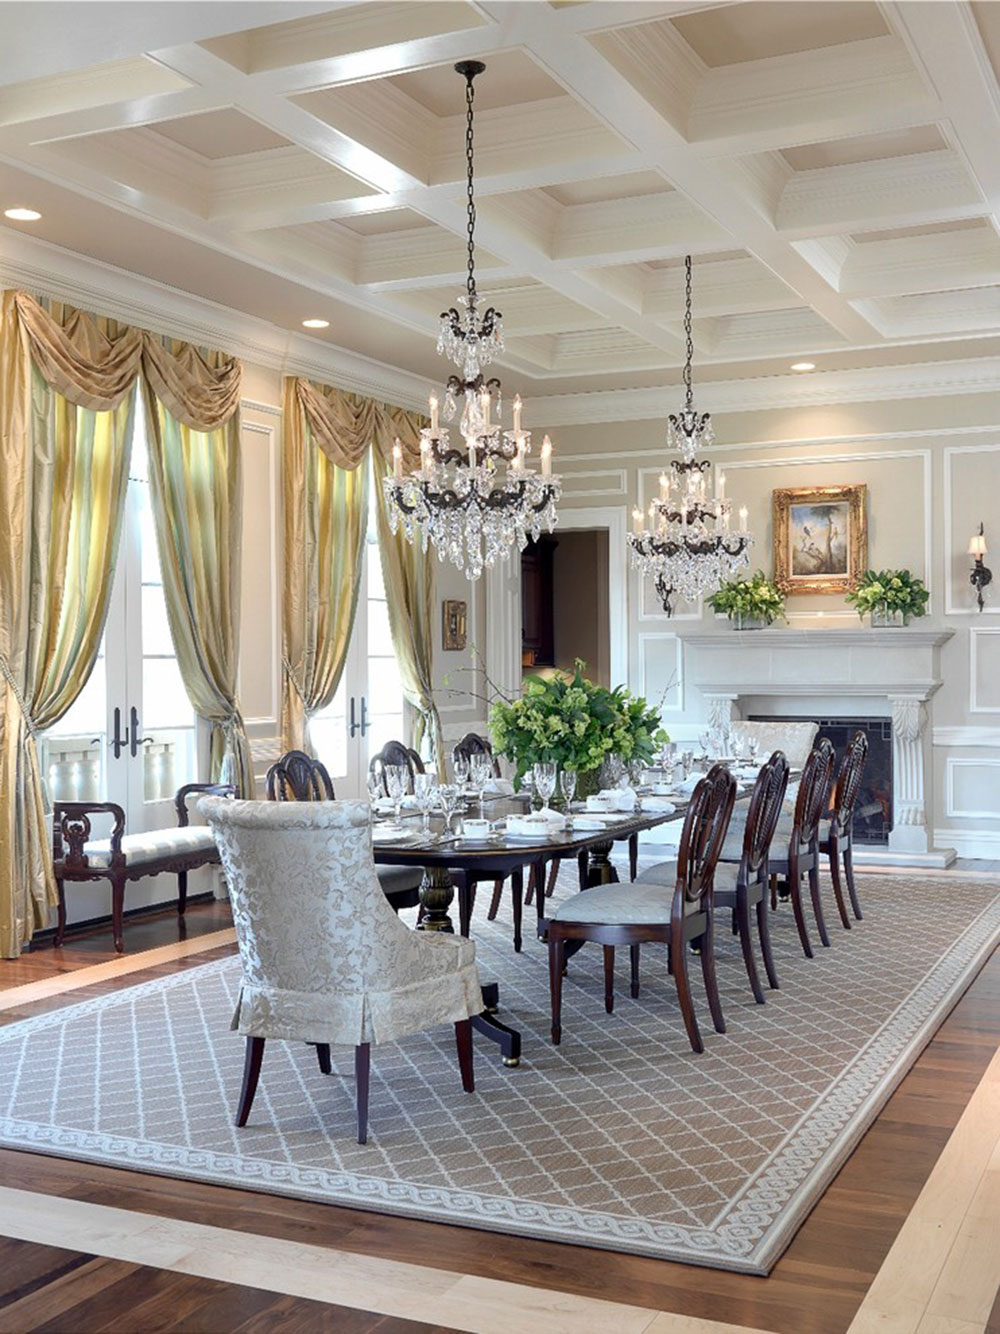 Breathtaking Pictures With Elegant Decorating Ideas